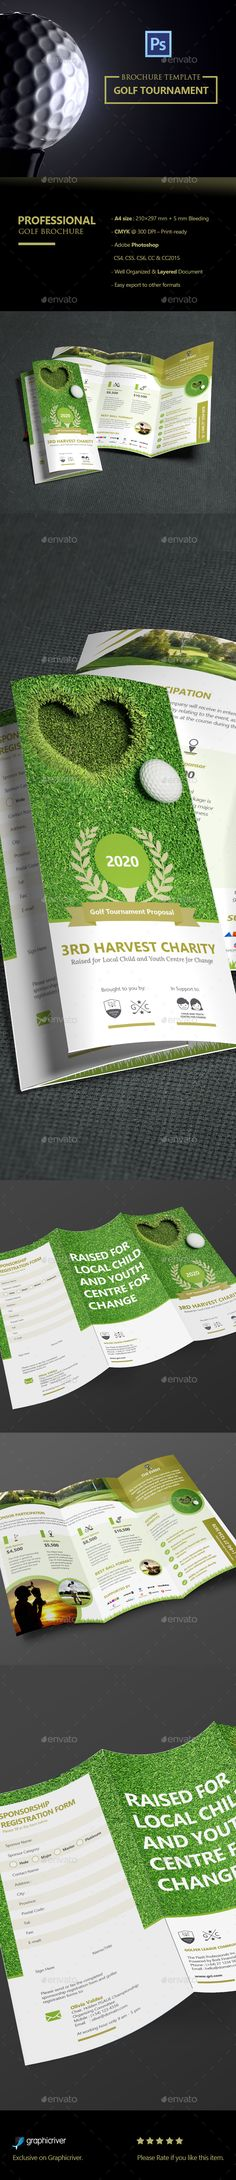 Golf Flyer \/ Golf Tournament (2 in 1) Print templates, Golf and - golf tournament brochure